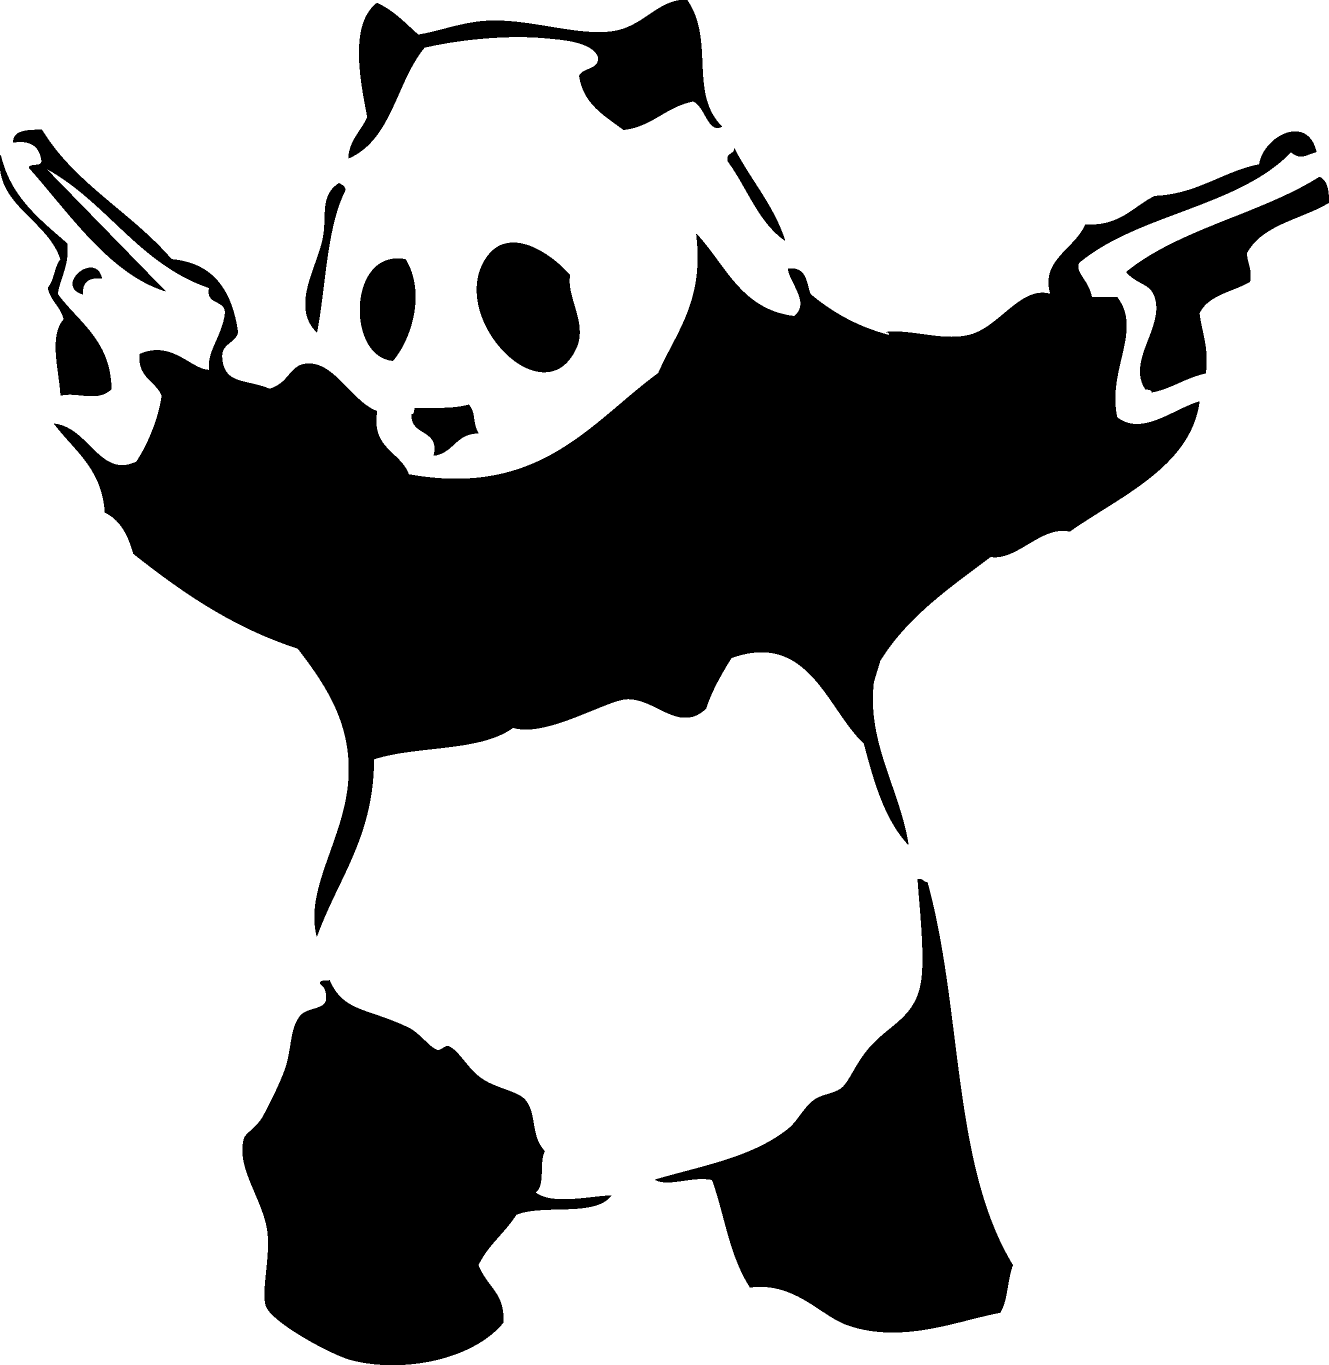 A panda walks into a restaurant, sits down and orders a sandwich ...